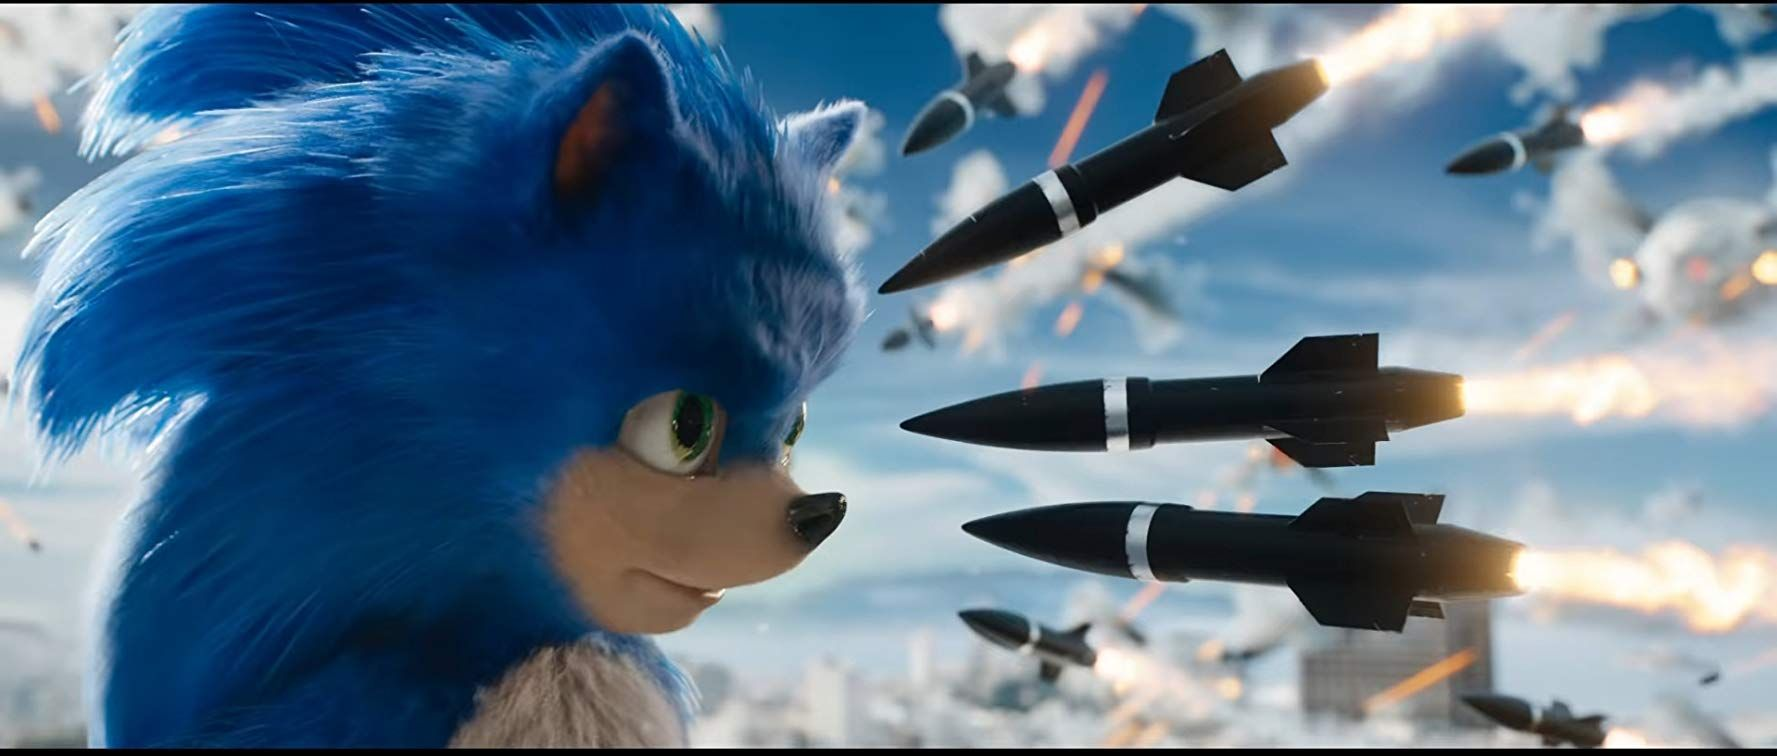 Watch Sonic The Hedgehog 2020 Full Online Mp4 In 2020 Sonic The Movie Free Movies Online Full Movies Online Free